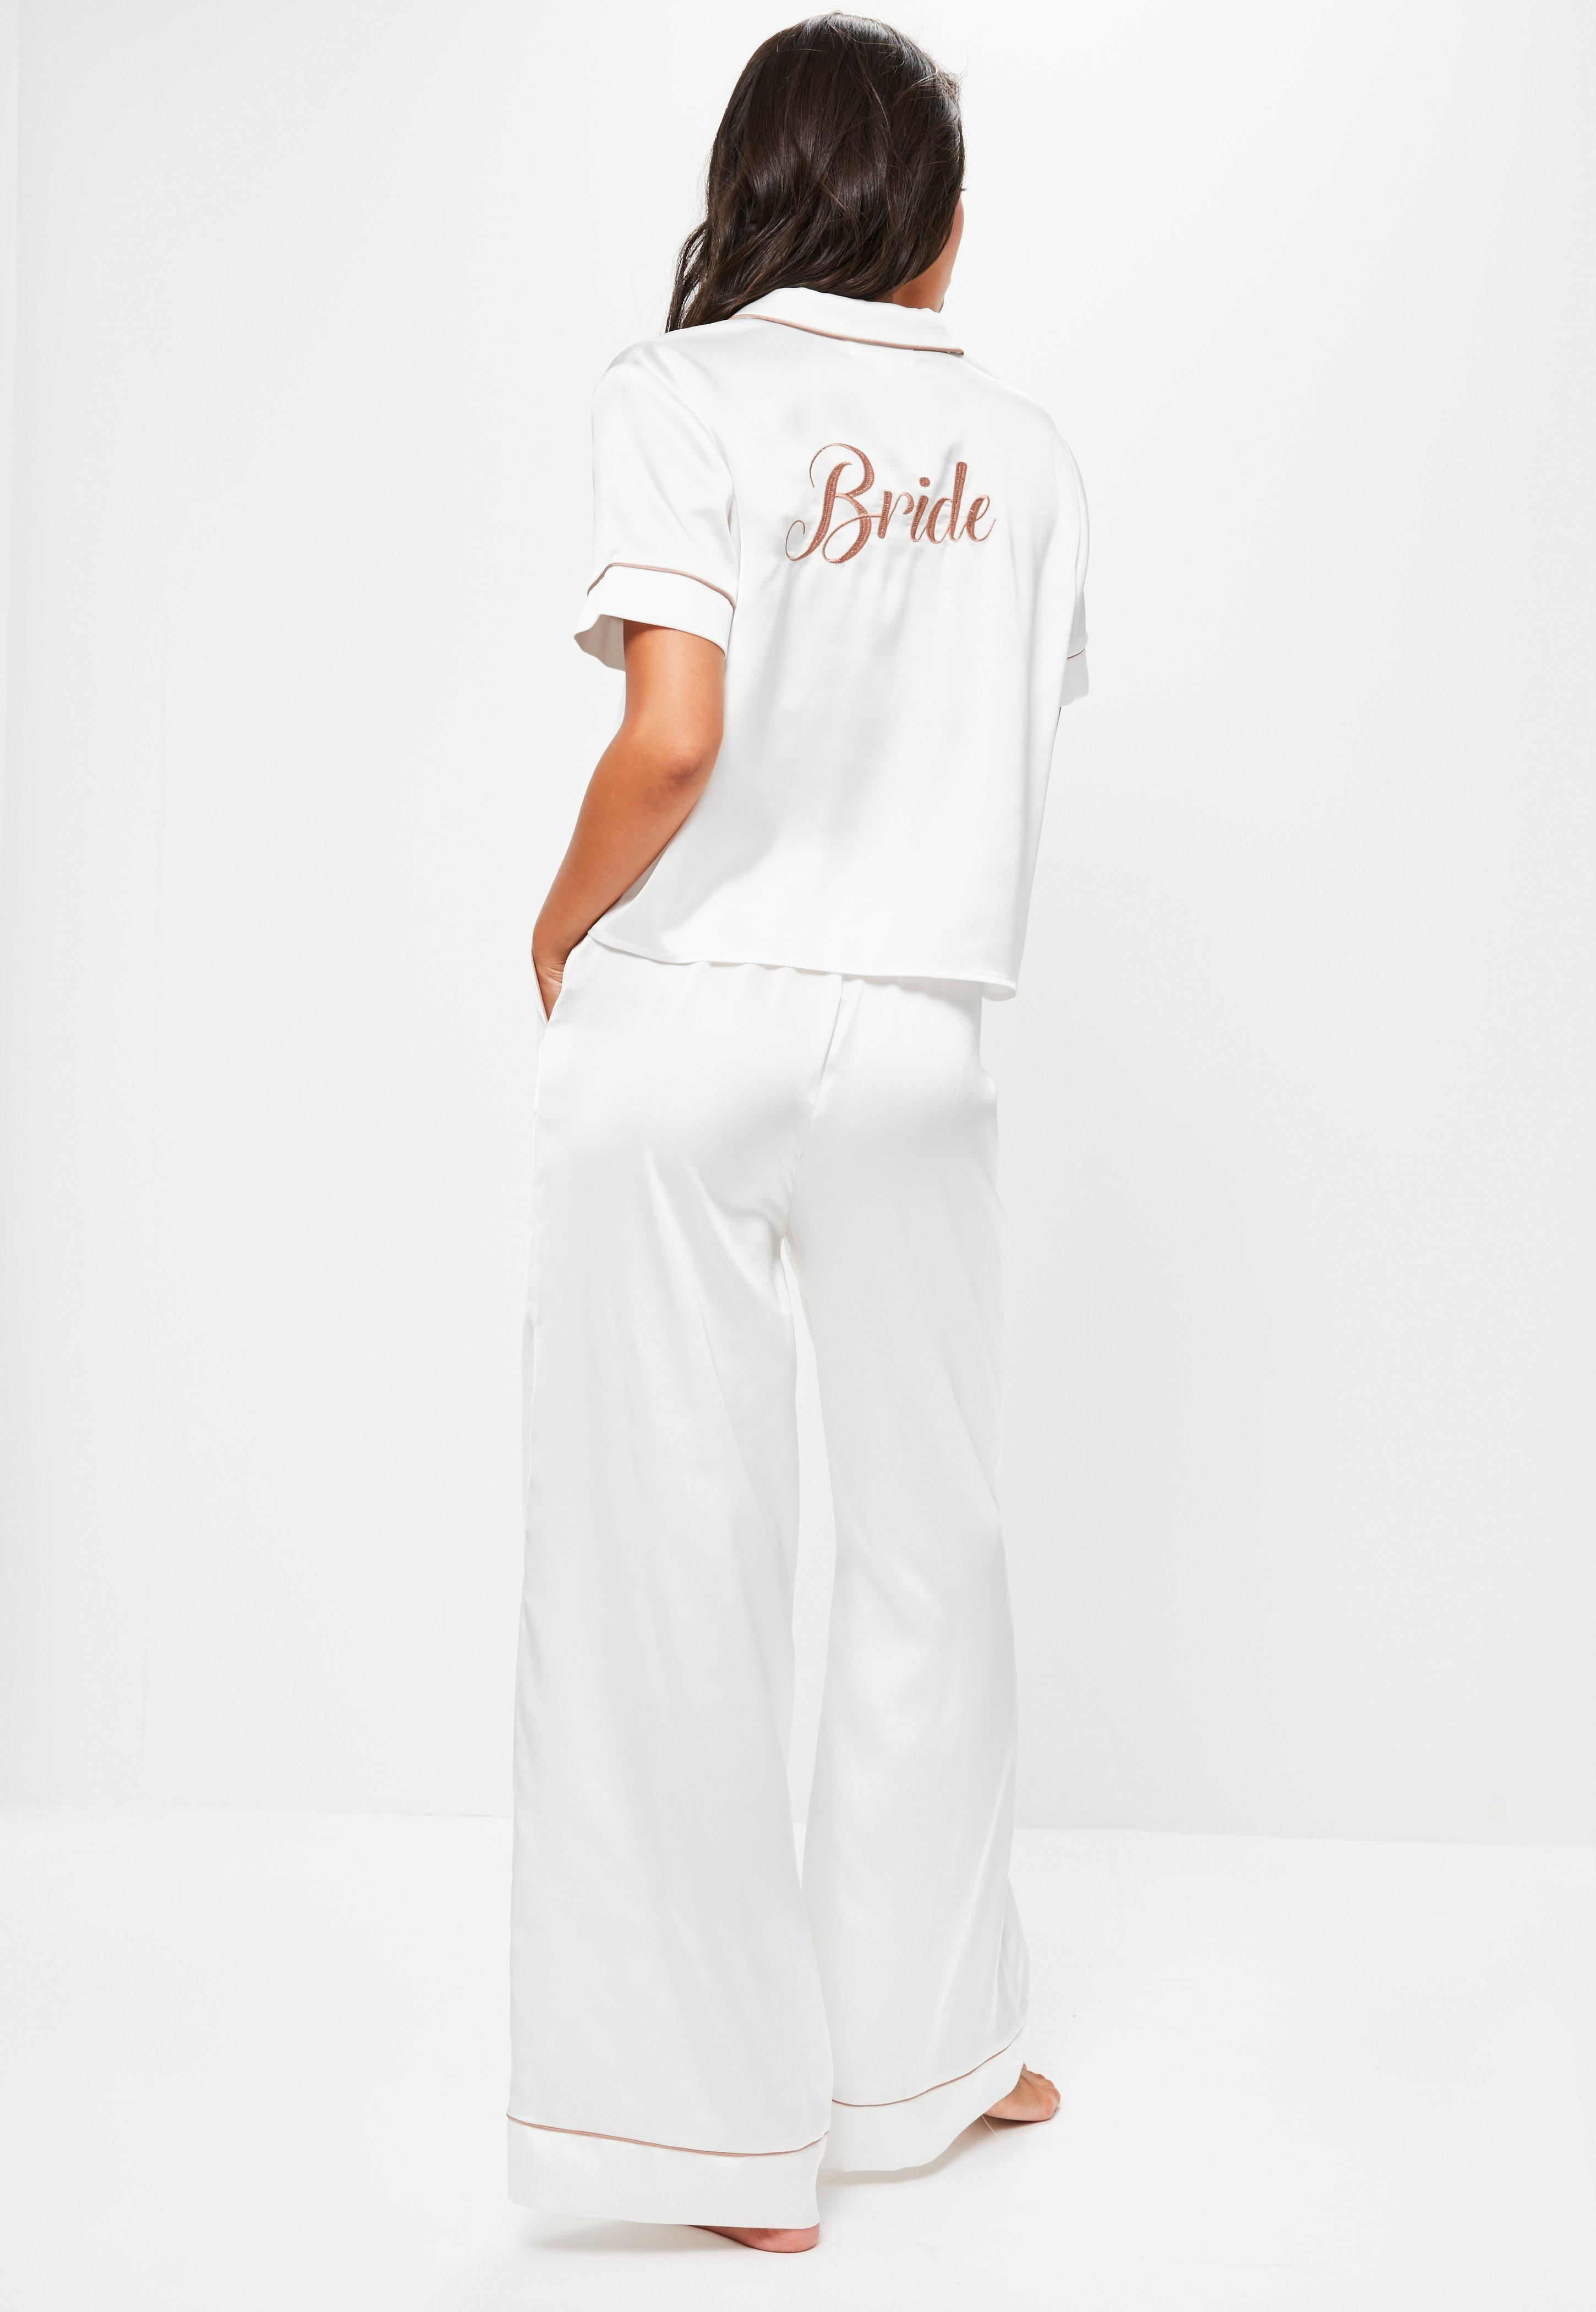 White Satin Bride Piped Pyjama Set by Missguided